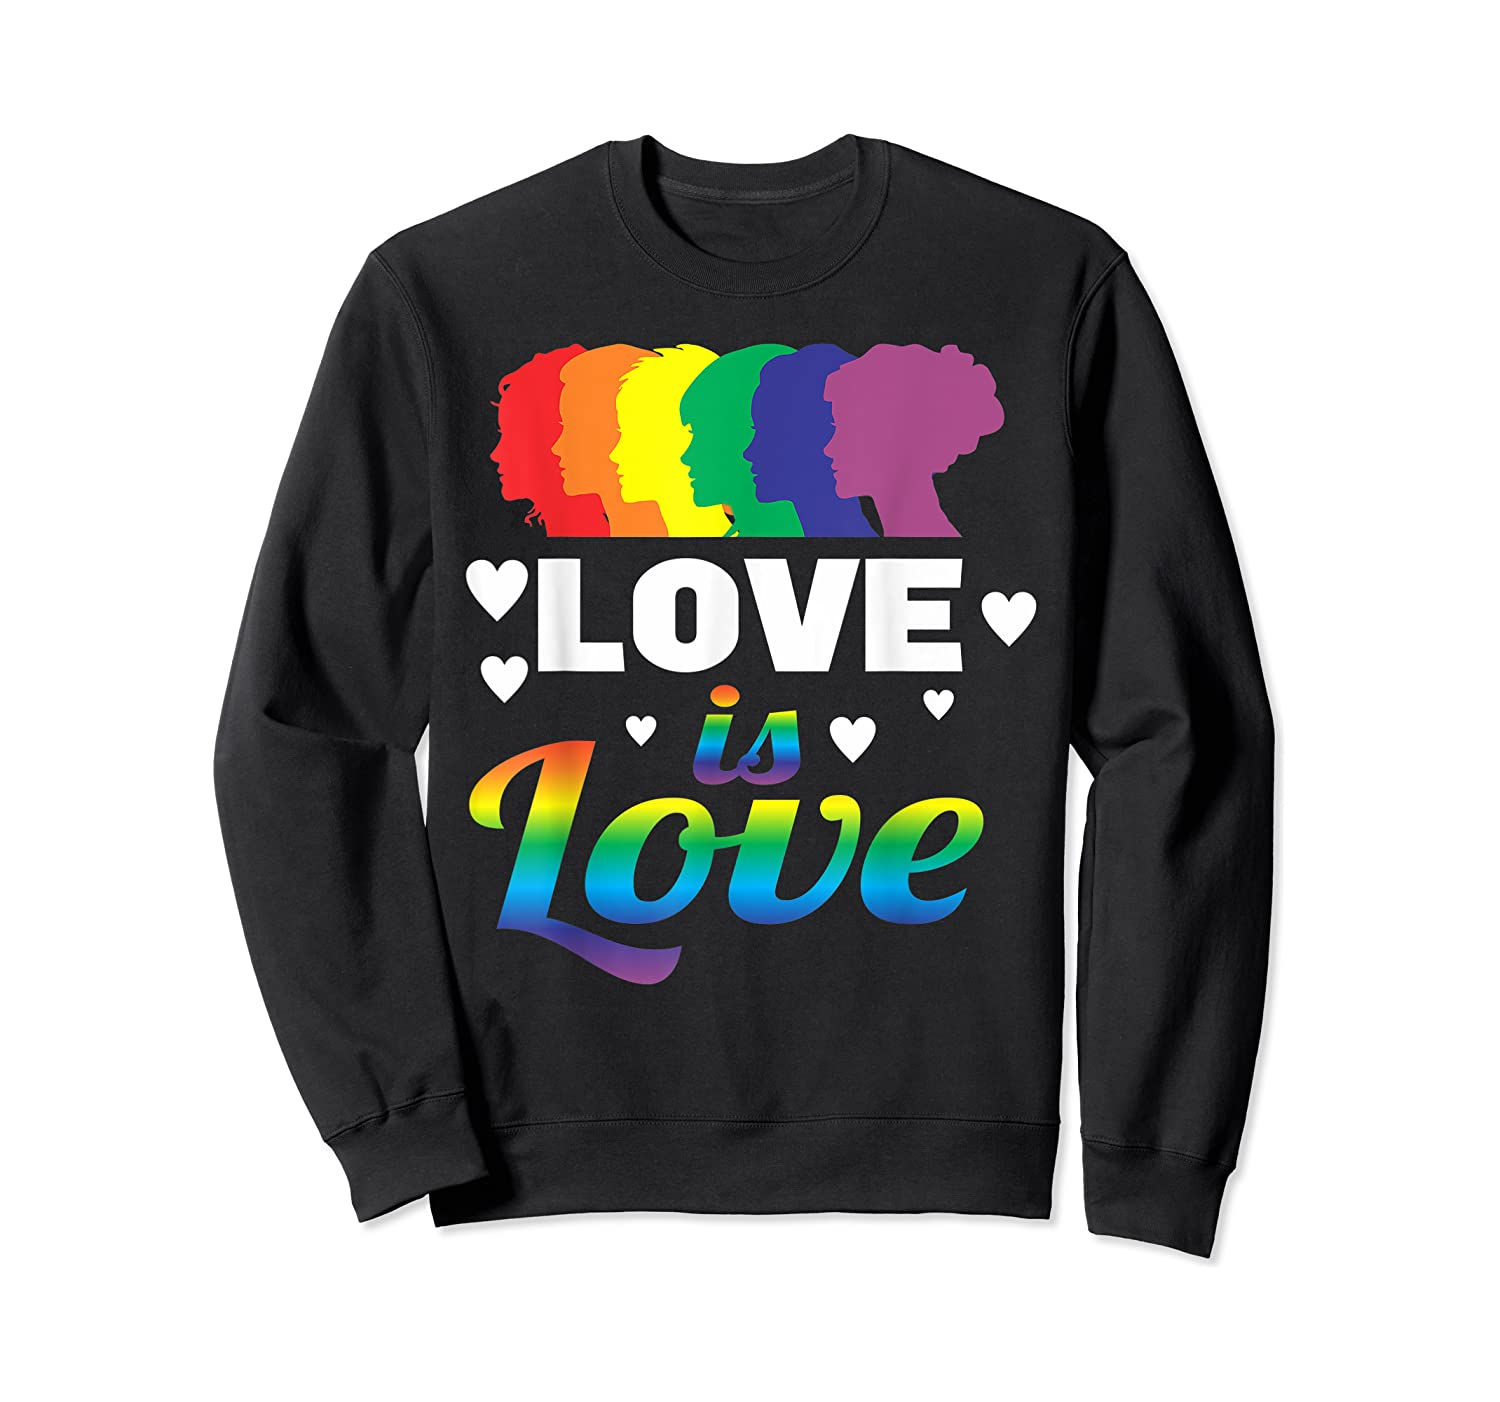 Colorful Pride Love Lgbt Suppor Gifts Love Is Love Shirts Crewneck Sweater